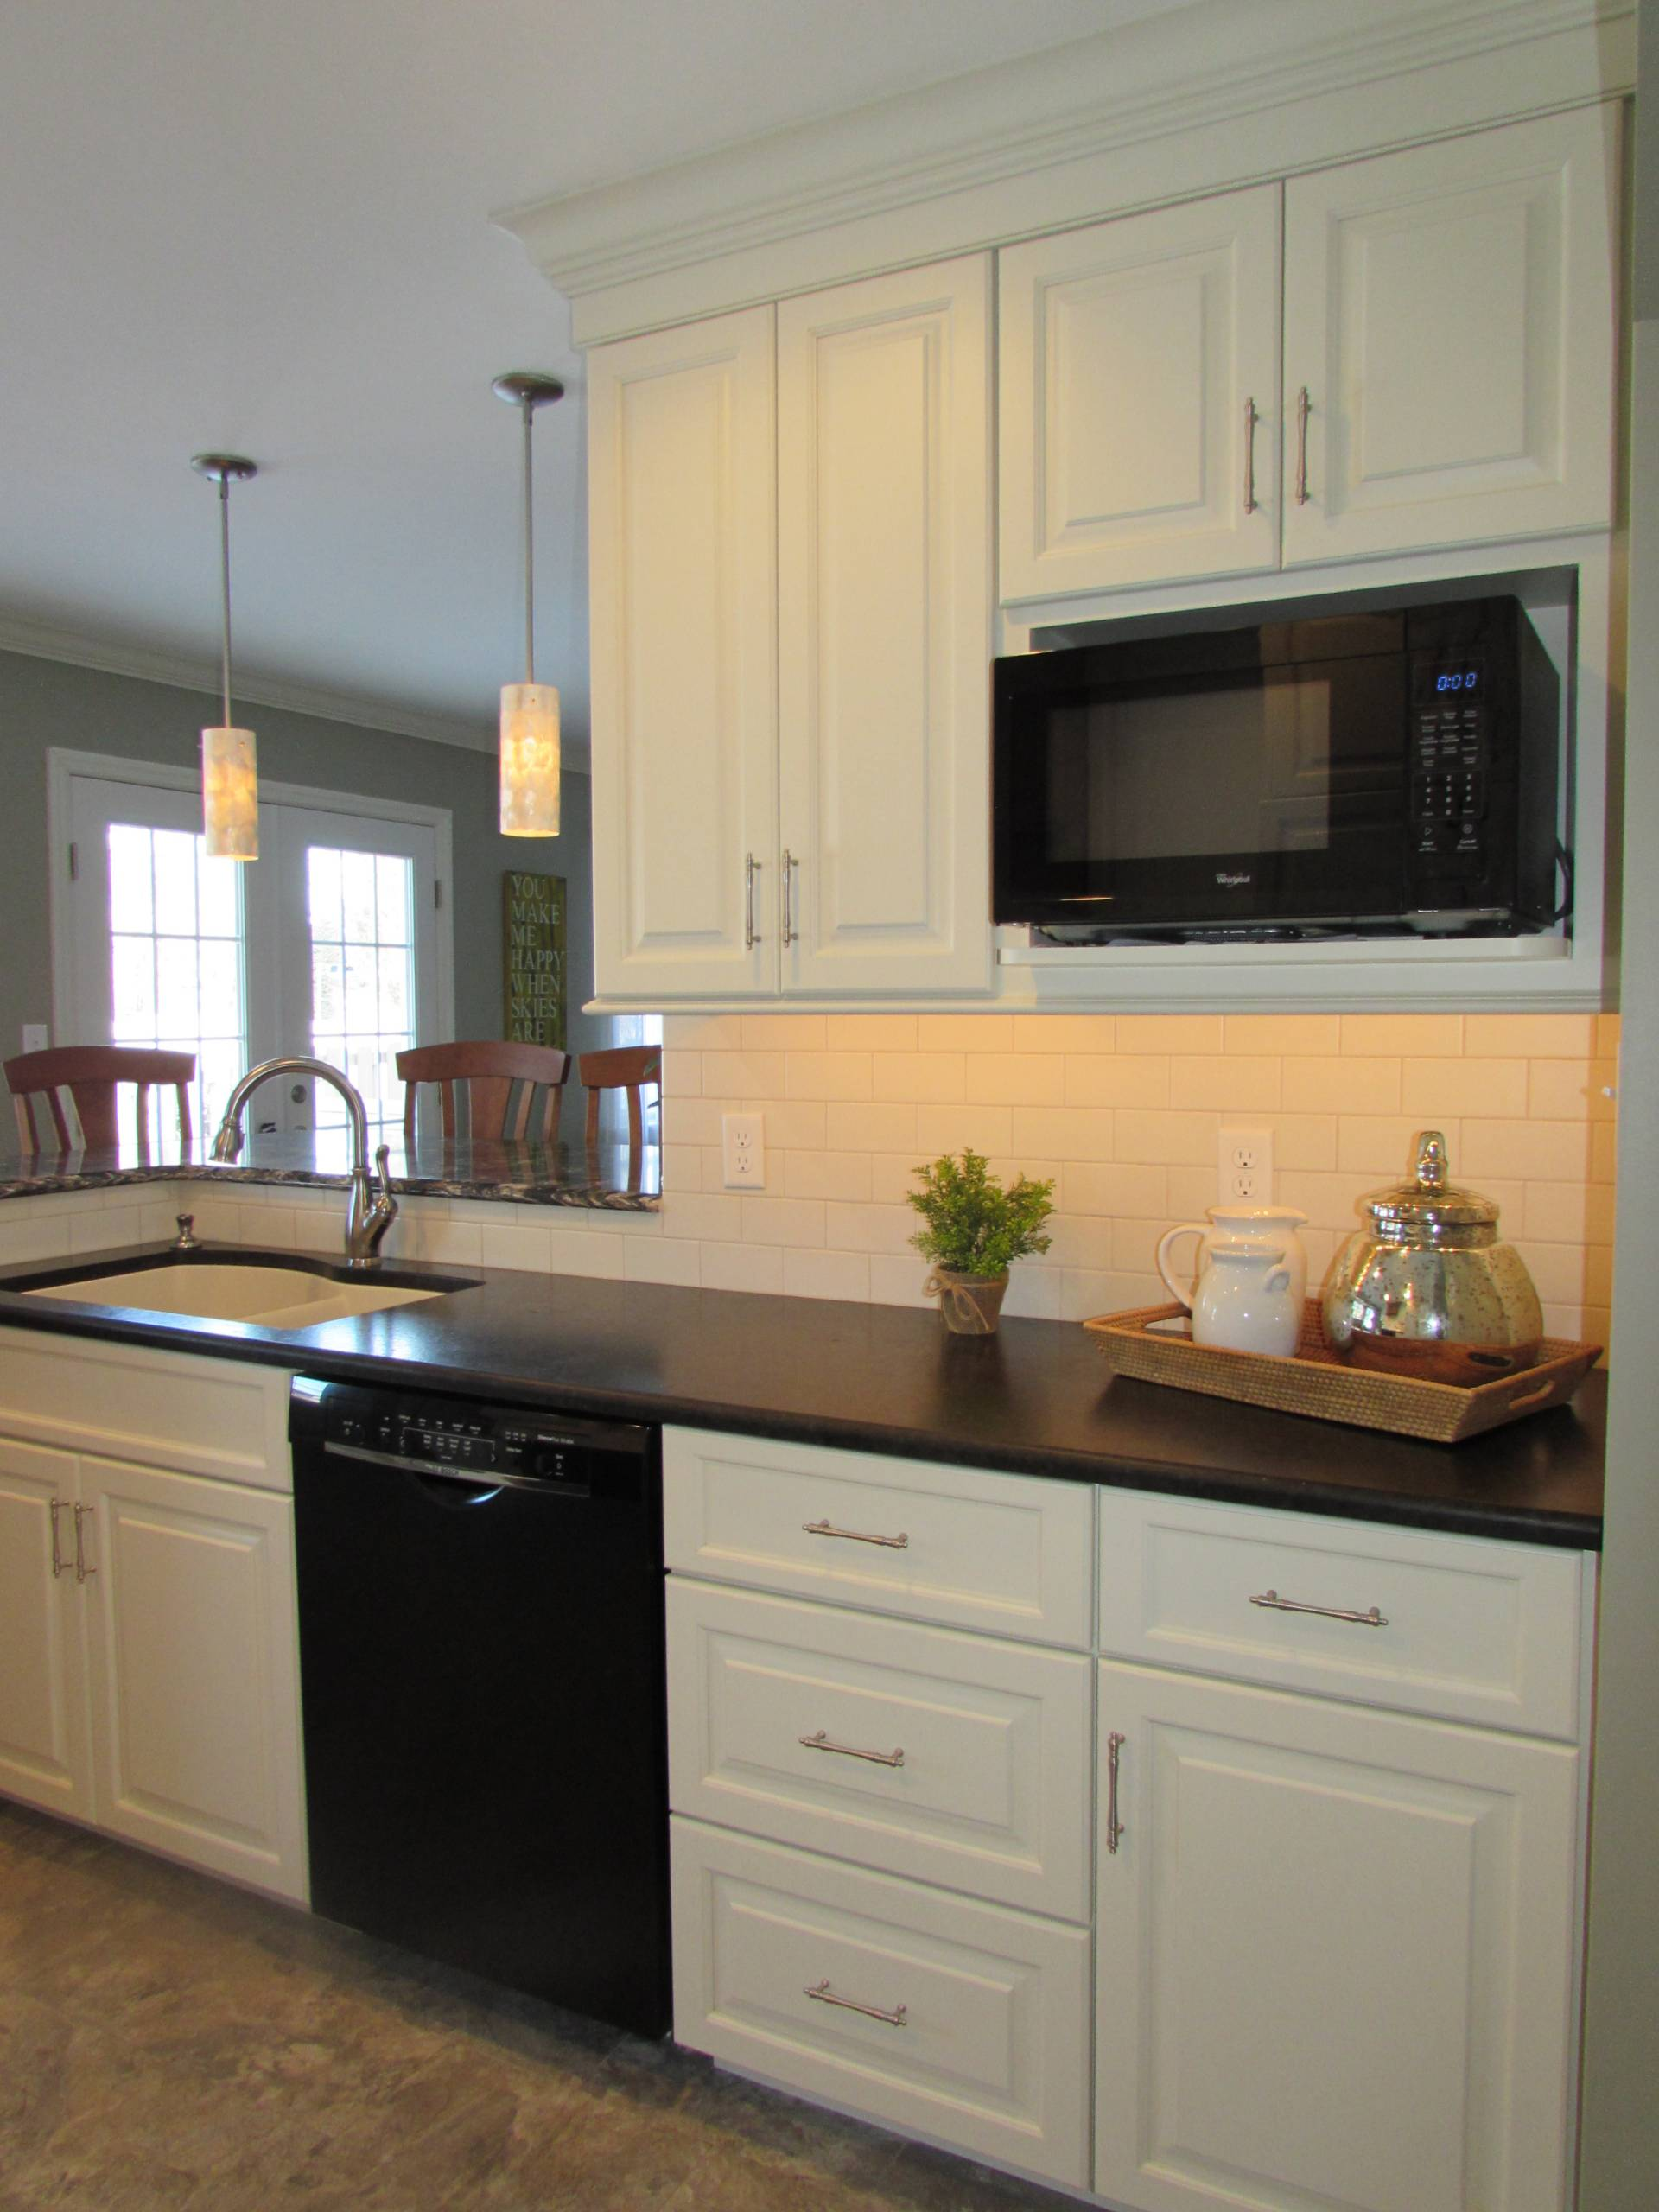 kitchen and bathroom remodeling kitchen remodeling york pa Narvon Kitchen